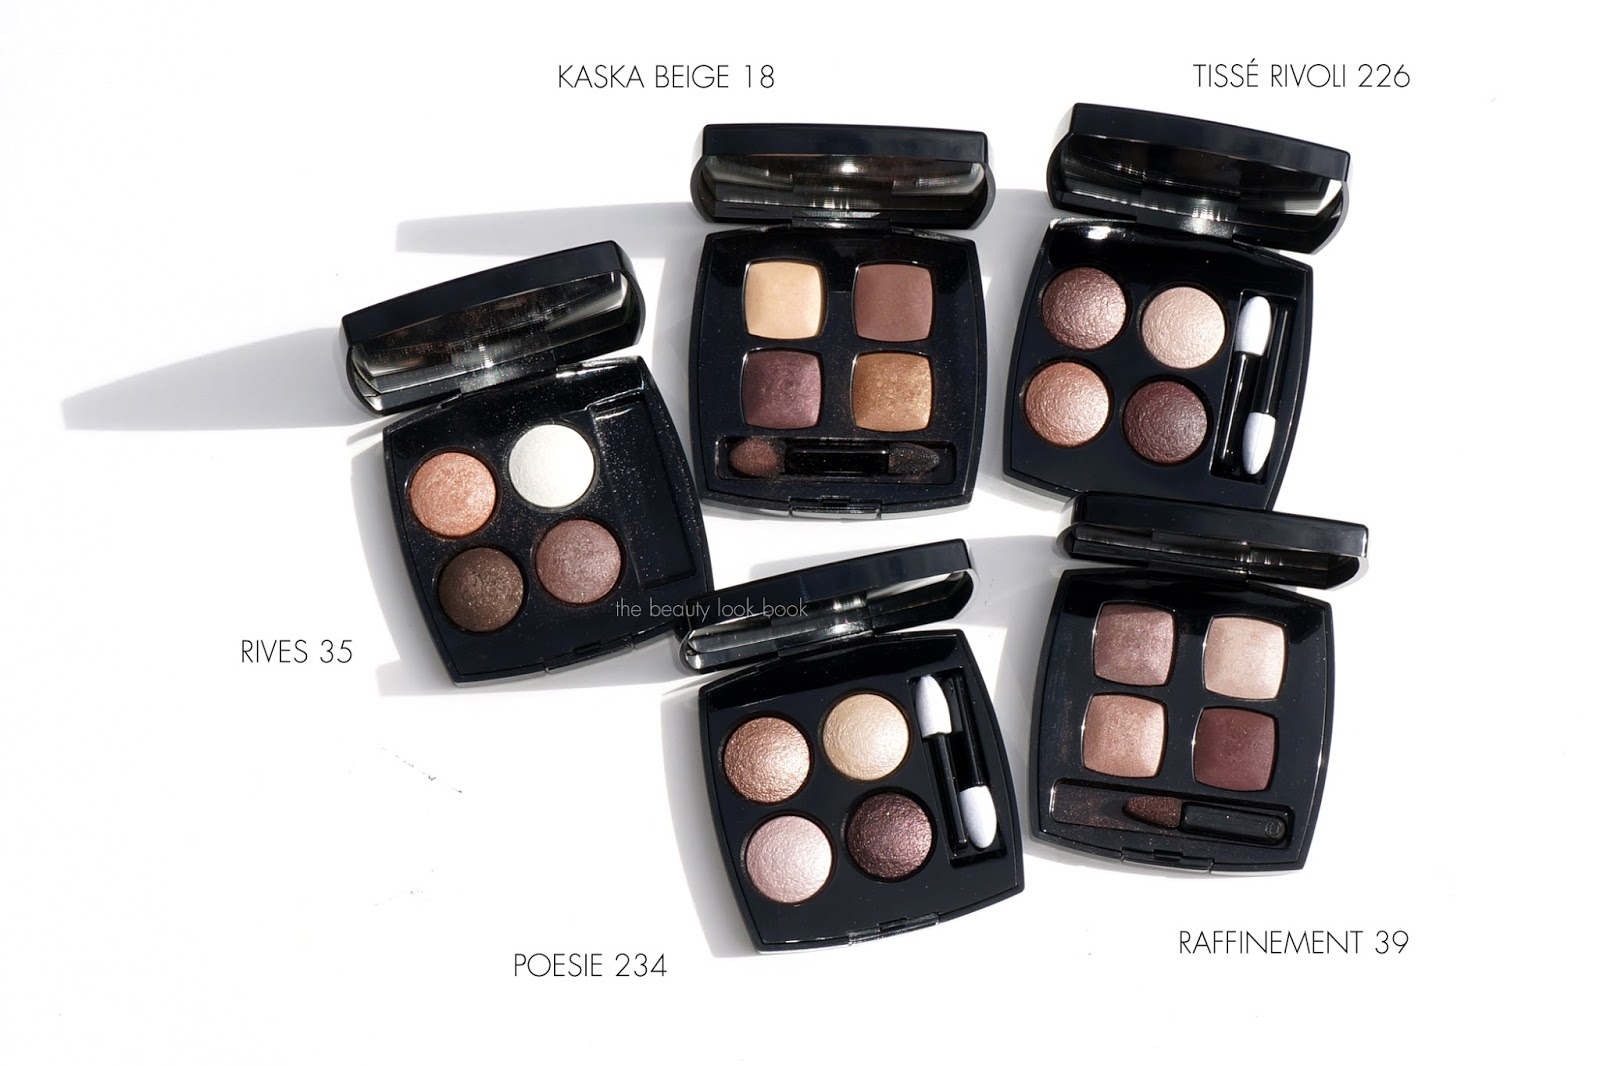 Quads Archives Page 2 Of 9 The Beauty Look Book Frnd Cosmetics Uptown Girl Set Fitting All On One Arm Proved To Be Impossible So I Have Two Sets Swatches Comparisons Show That Raffinement Is Very Similar Poesie And